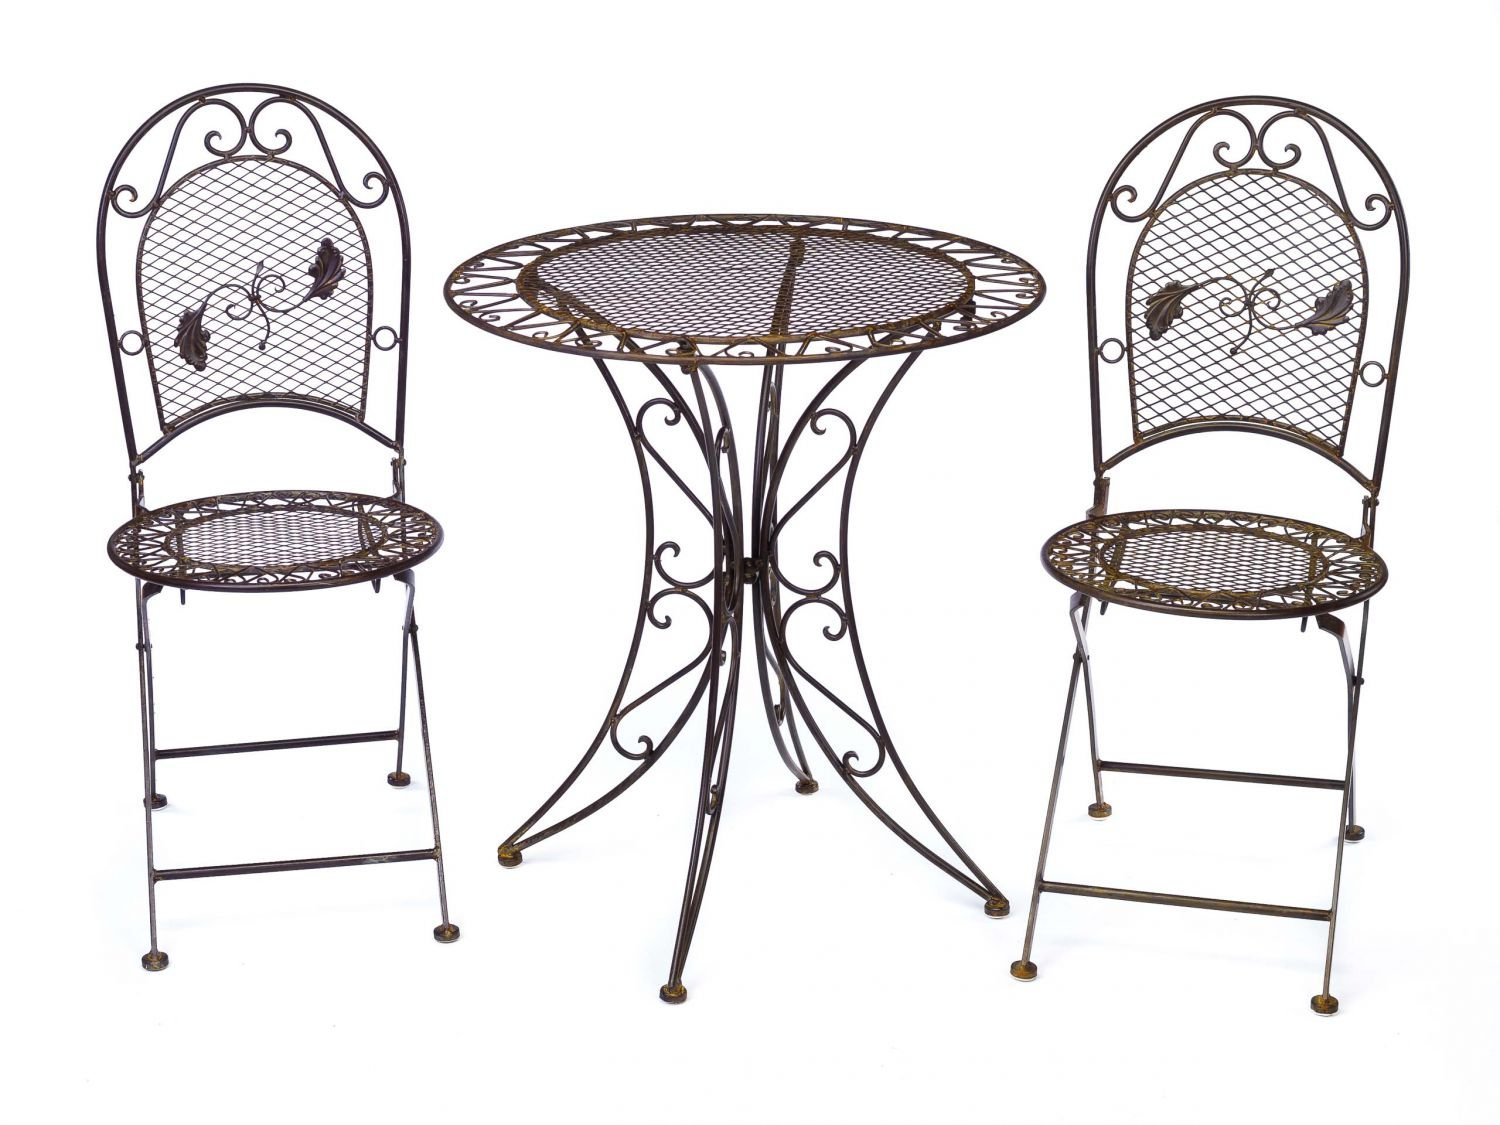 Vintage garden furniture set - table & 2 chairs - wrought iron ...